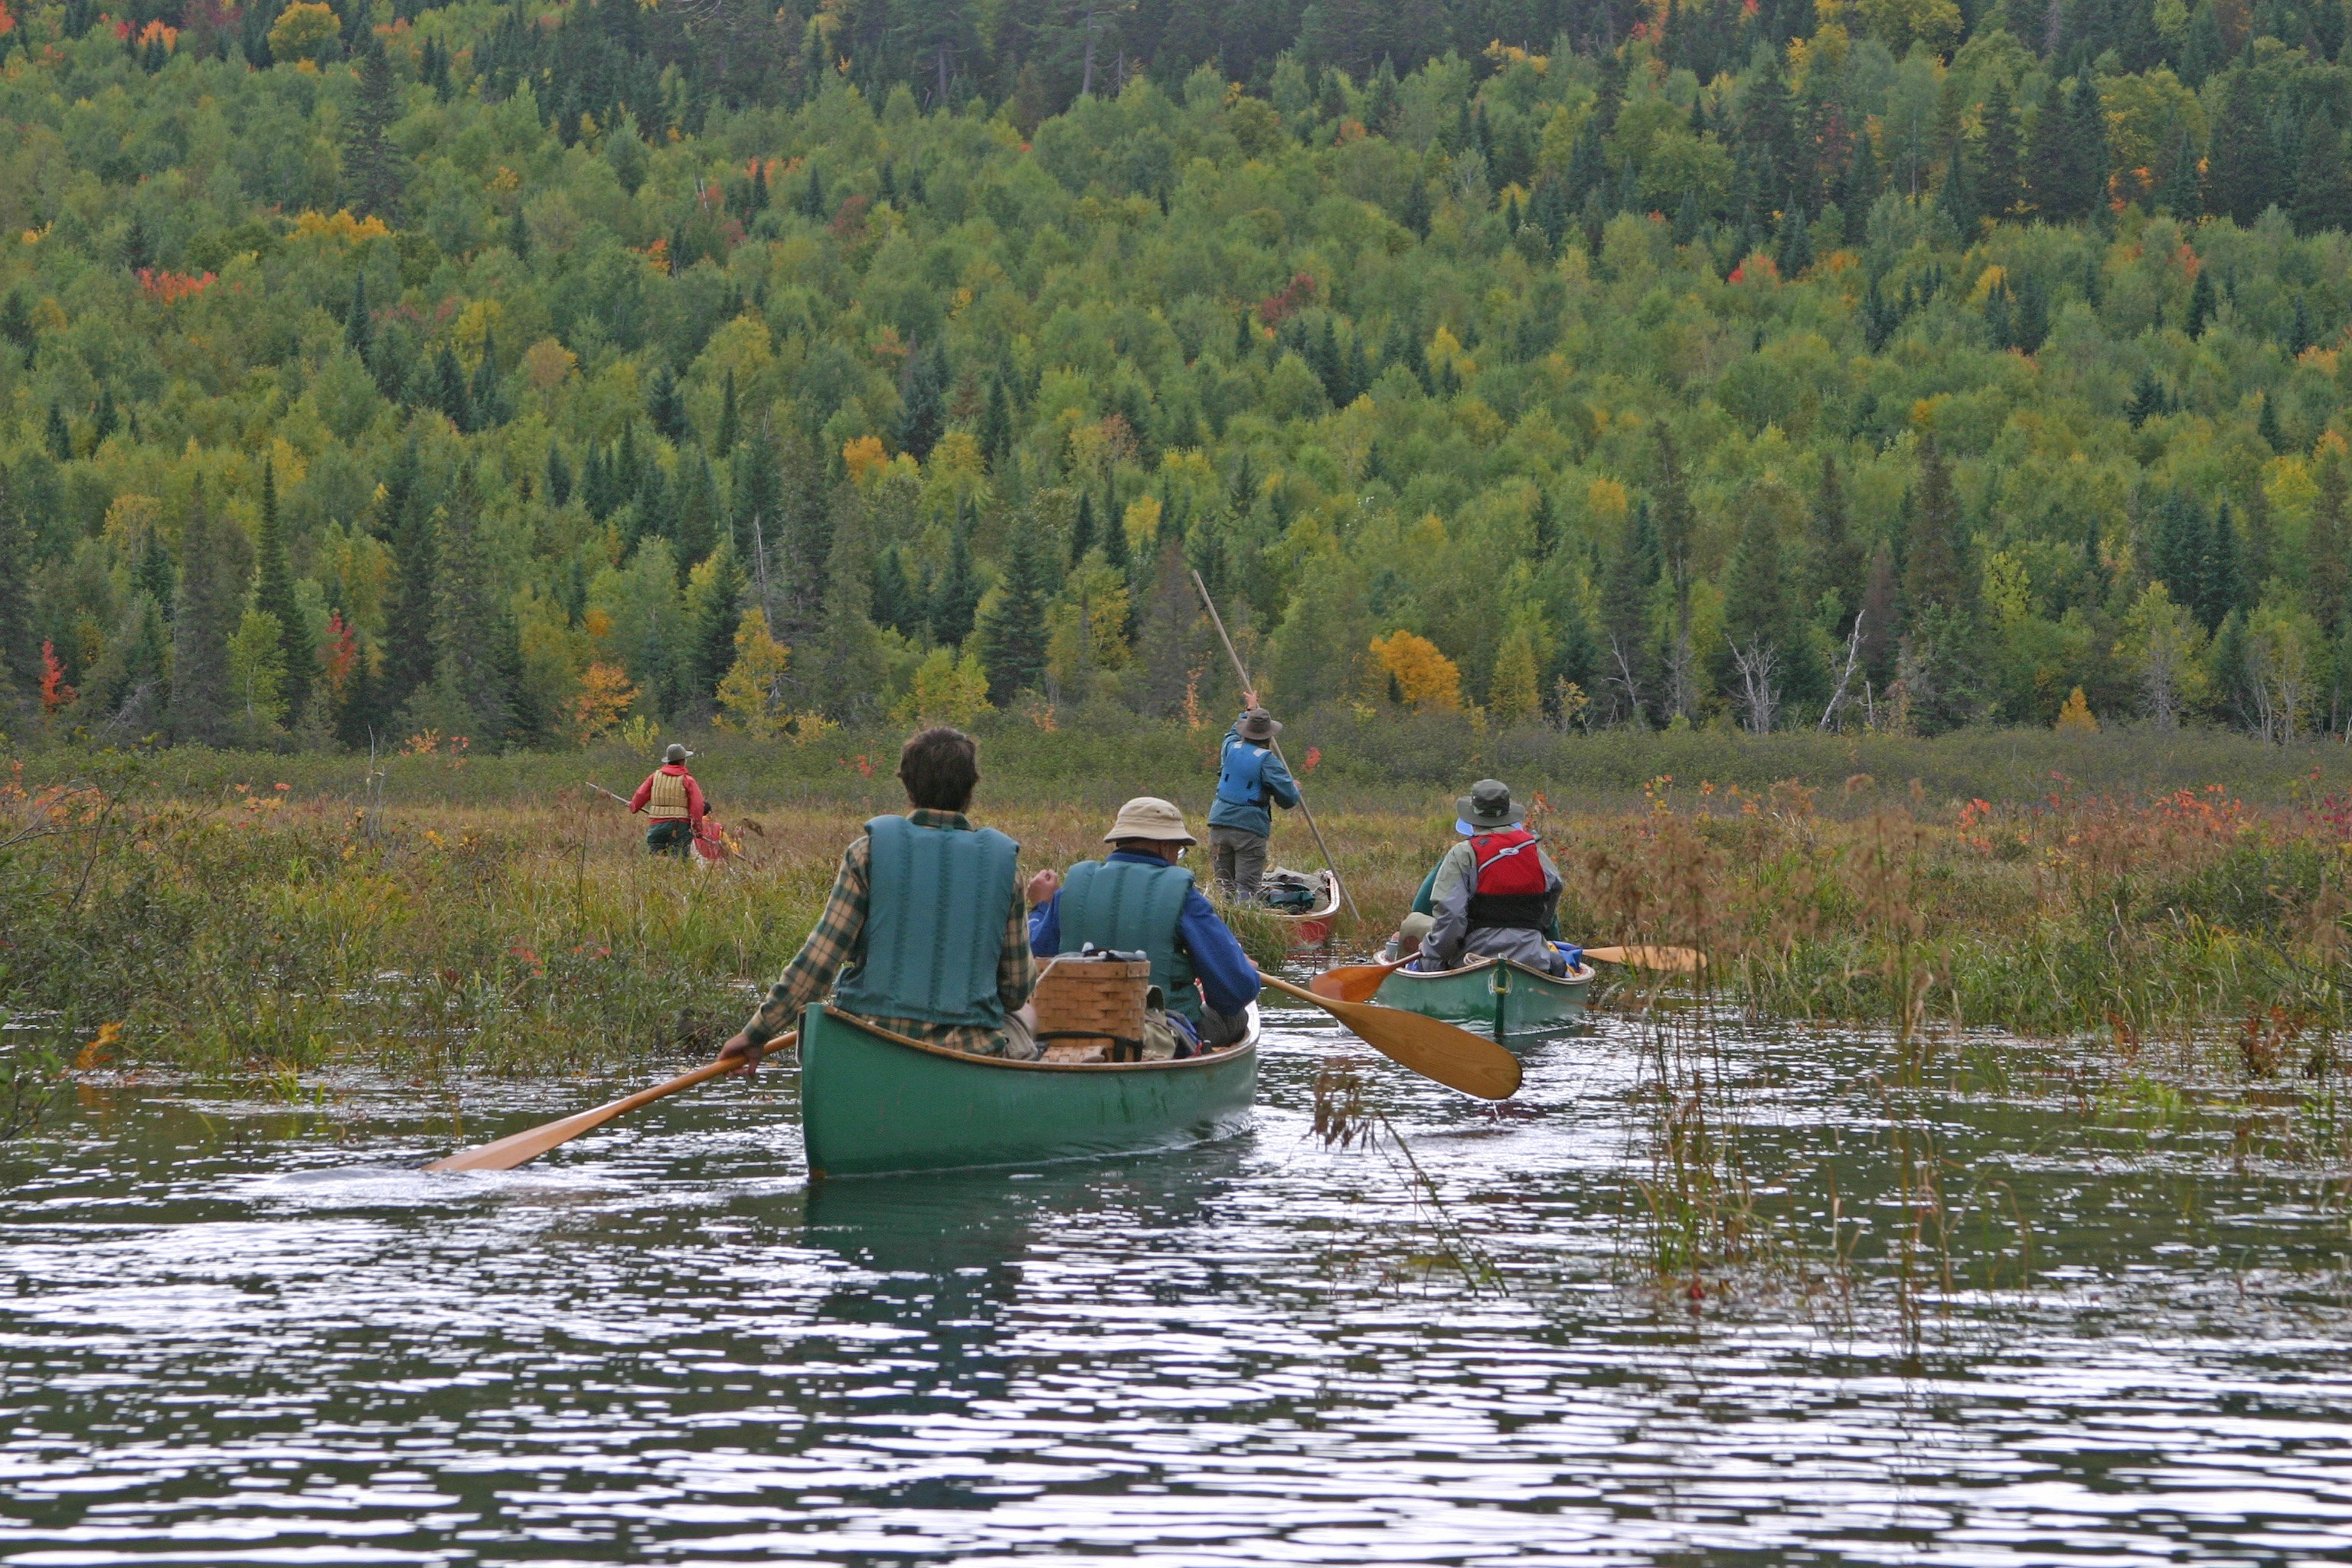 Paddling on the Allagash river.